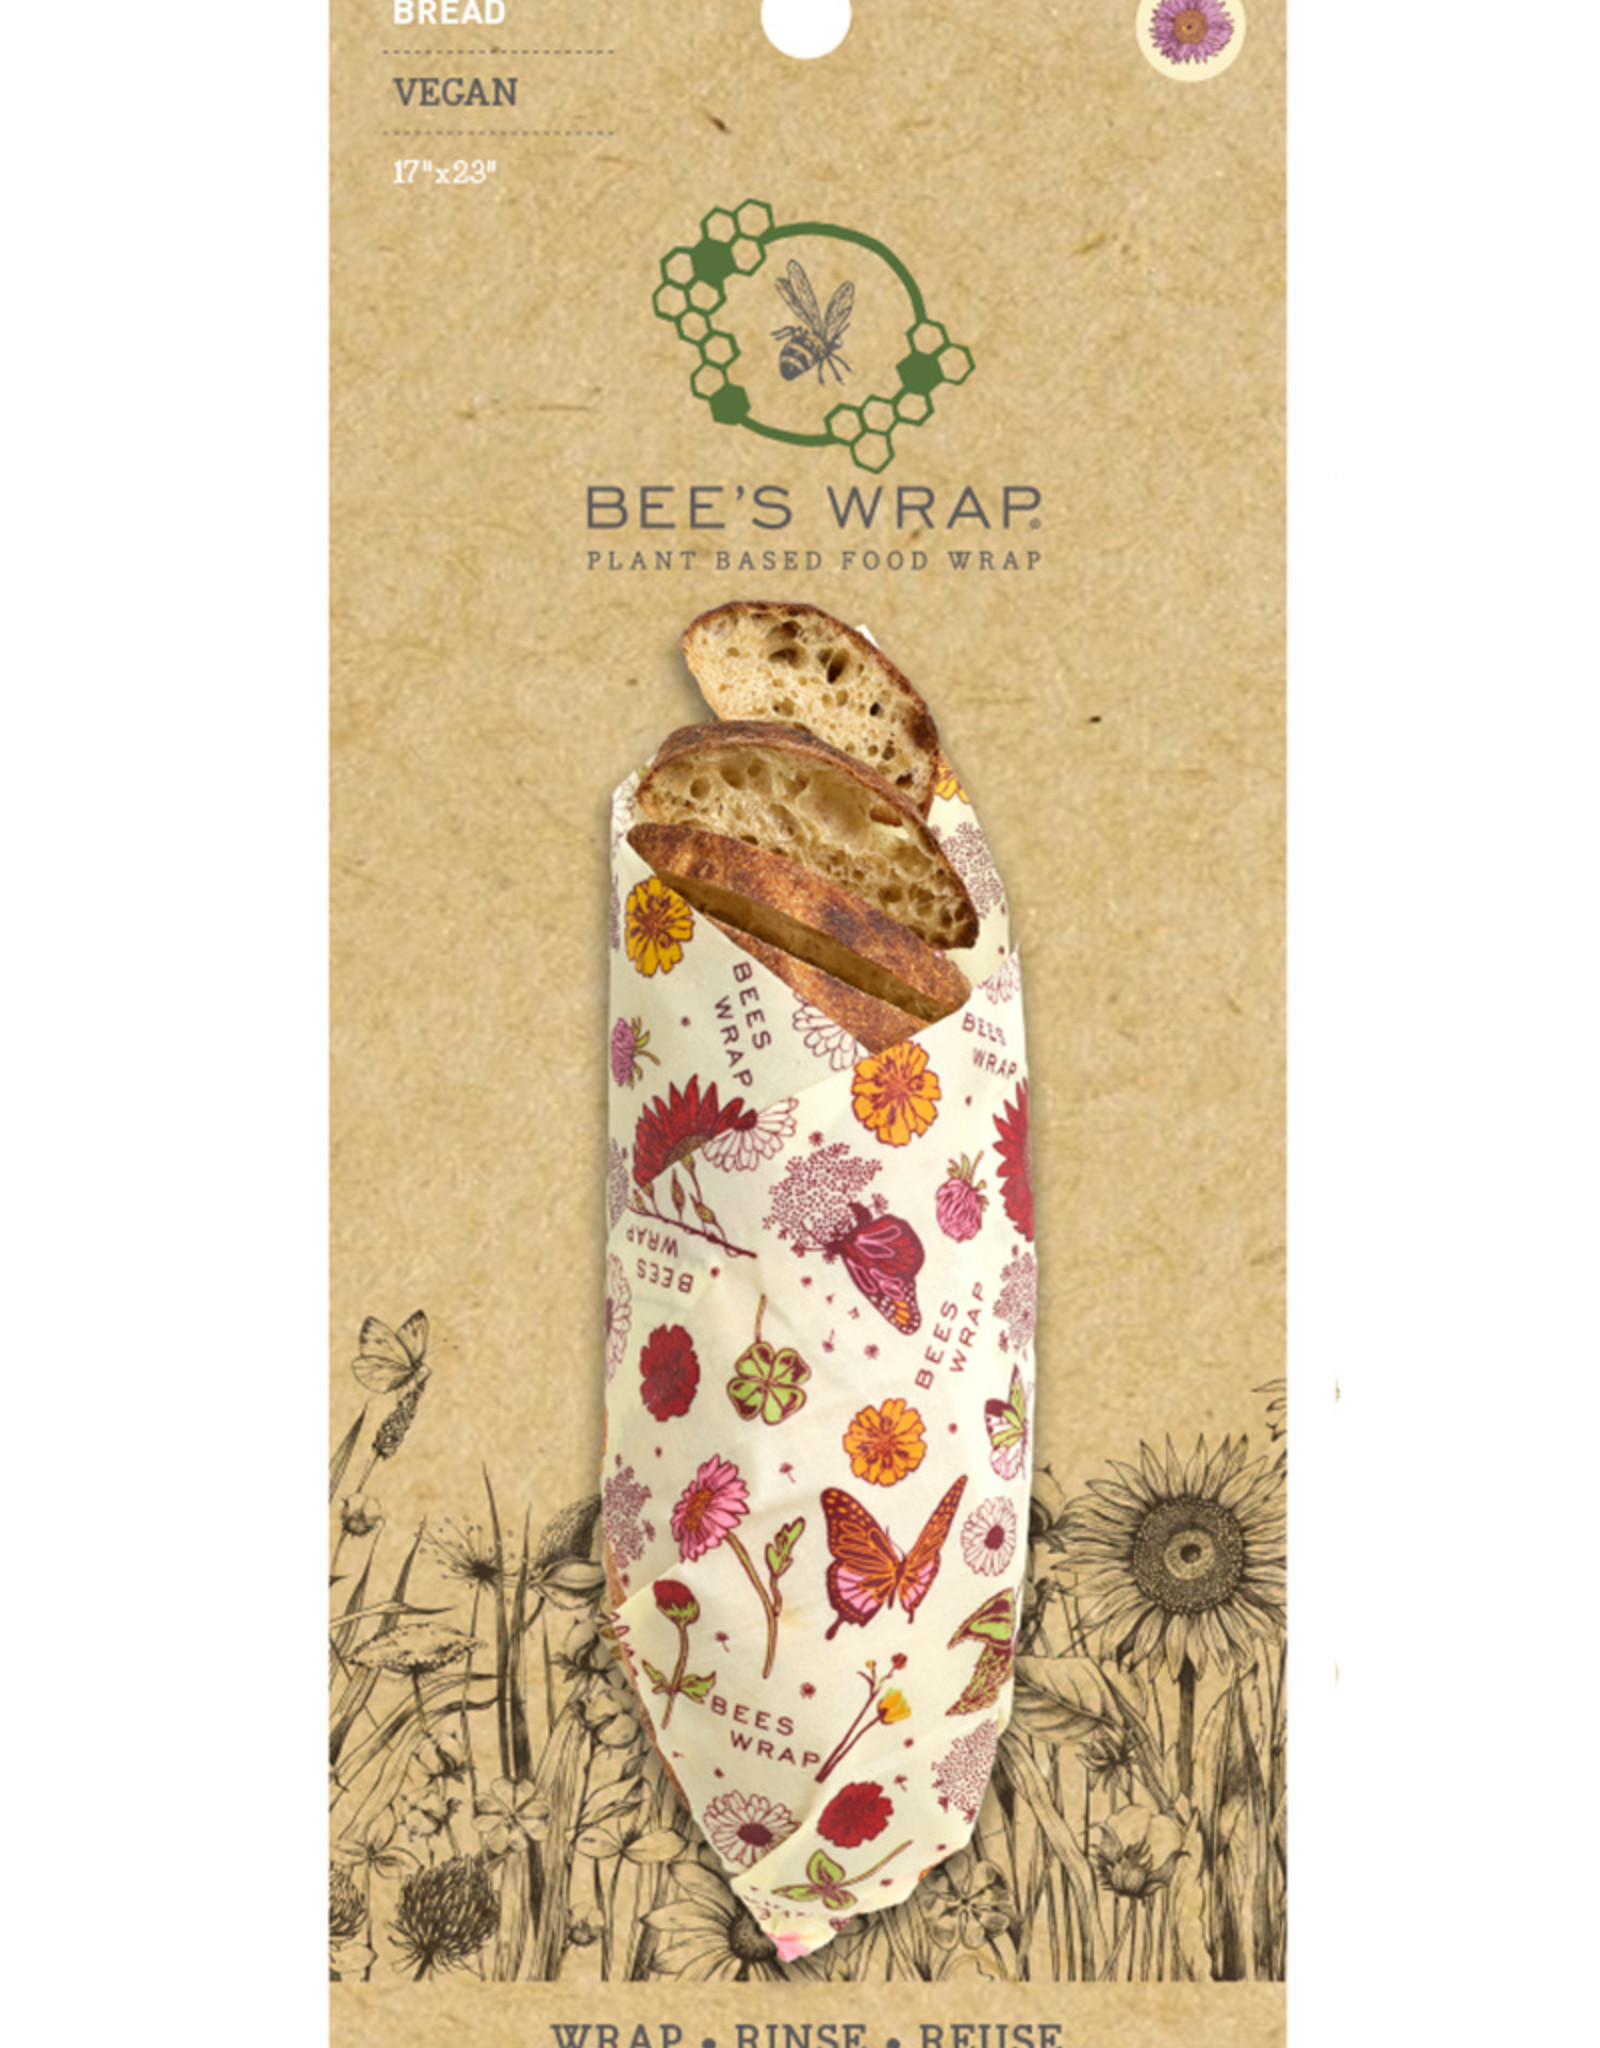 Bee's Wrap Bee's wrap Vegan 1 pc